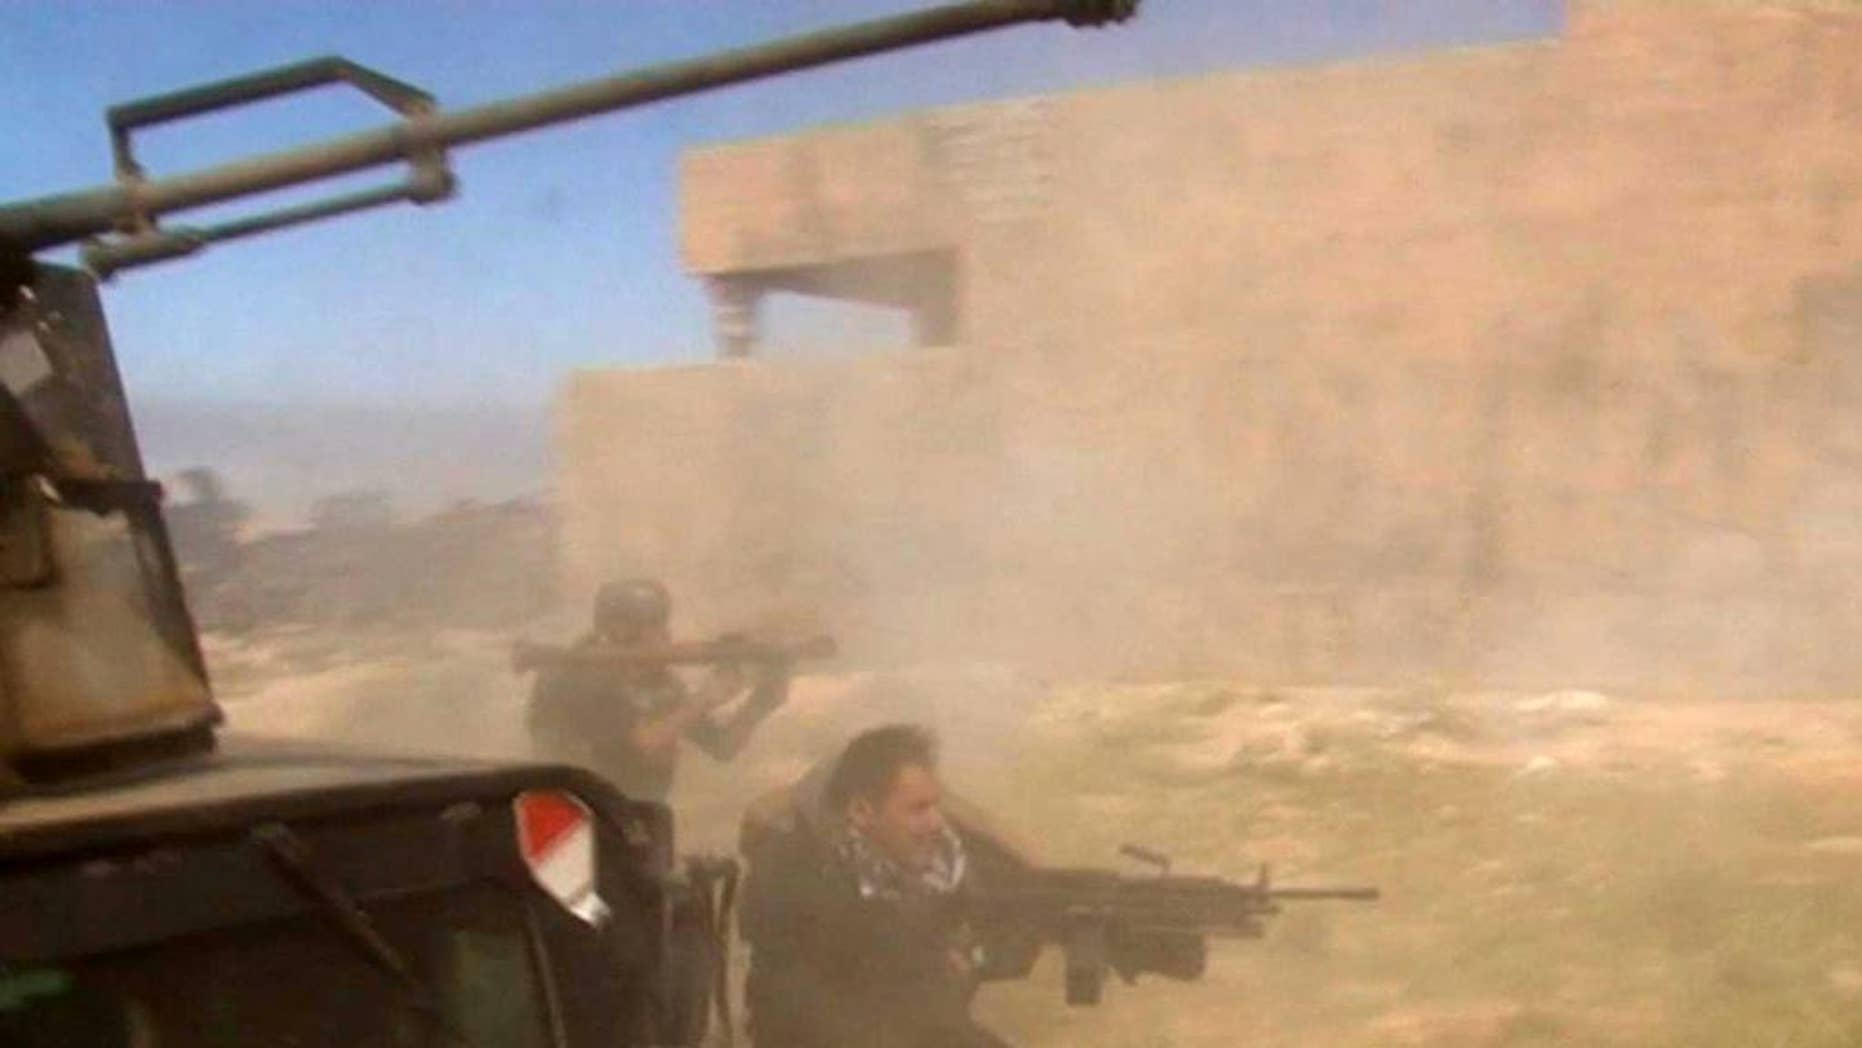 March 11, 2015: In this still image taken from video, soldiers fire towards a target in Tikrit, Iraq on Wednesday. (AP)